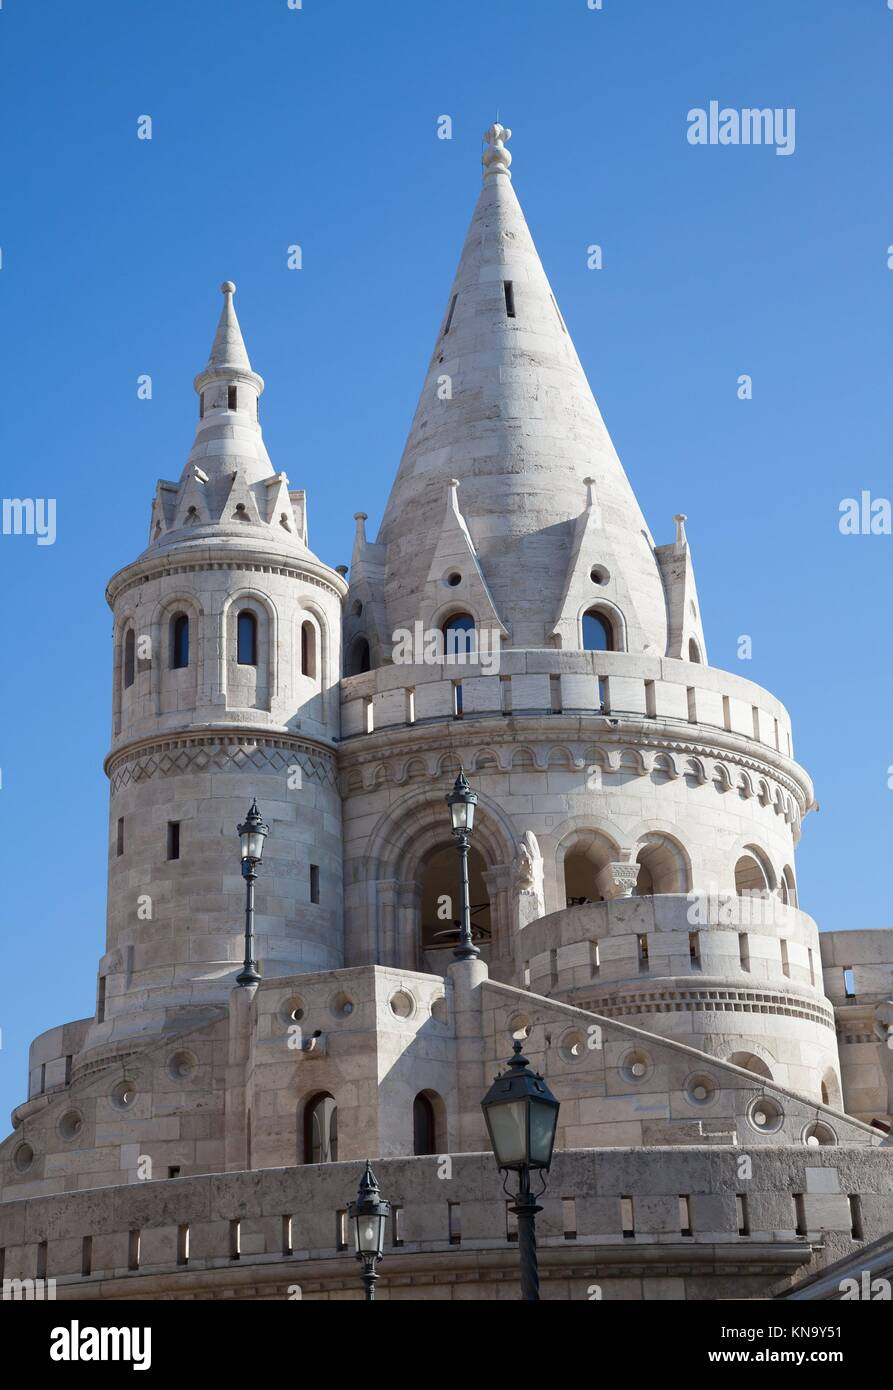 Fisherman's Bastion is a terrace in neo-Gothic and neo-Romanesque style, Budapest famous landmark. - Stock Image